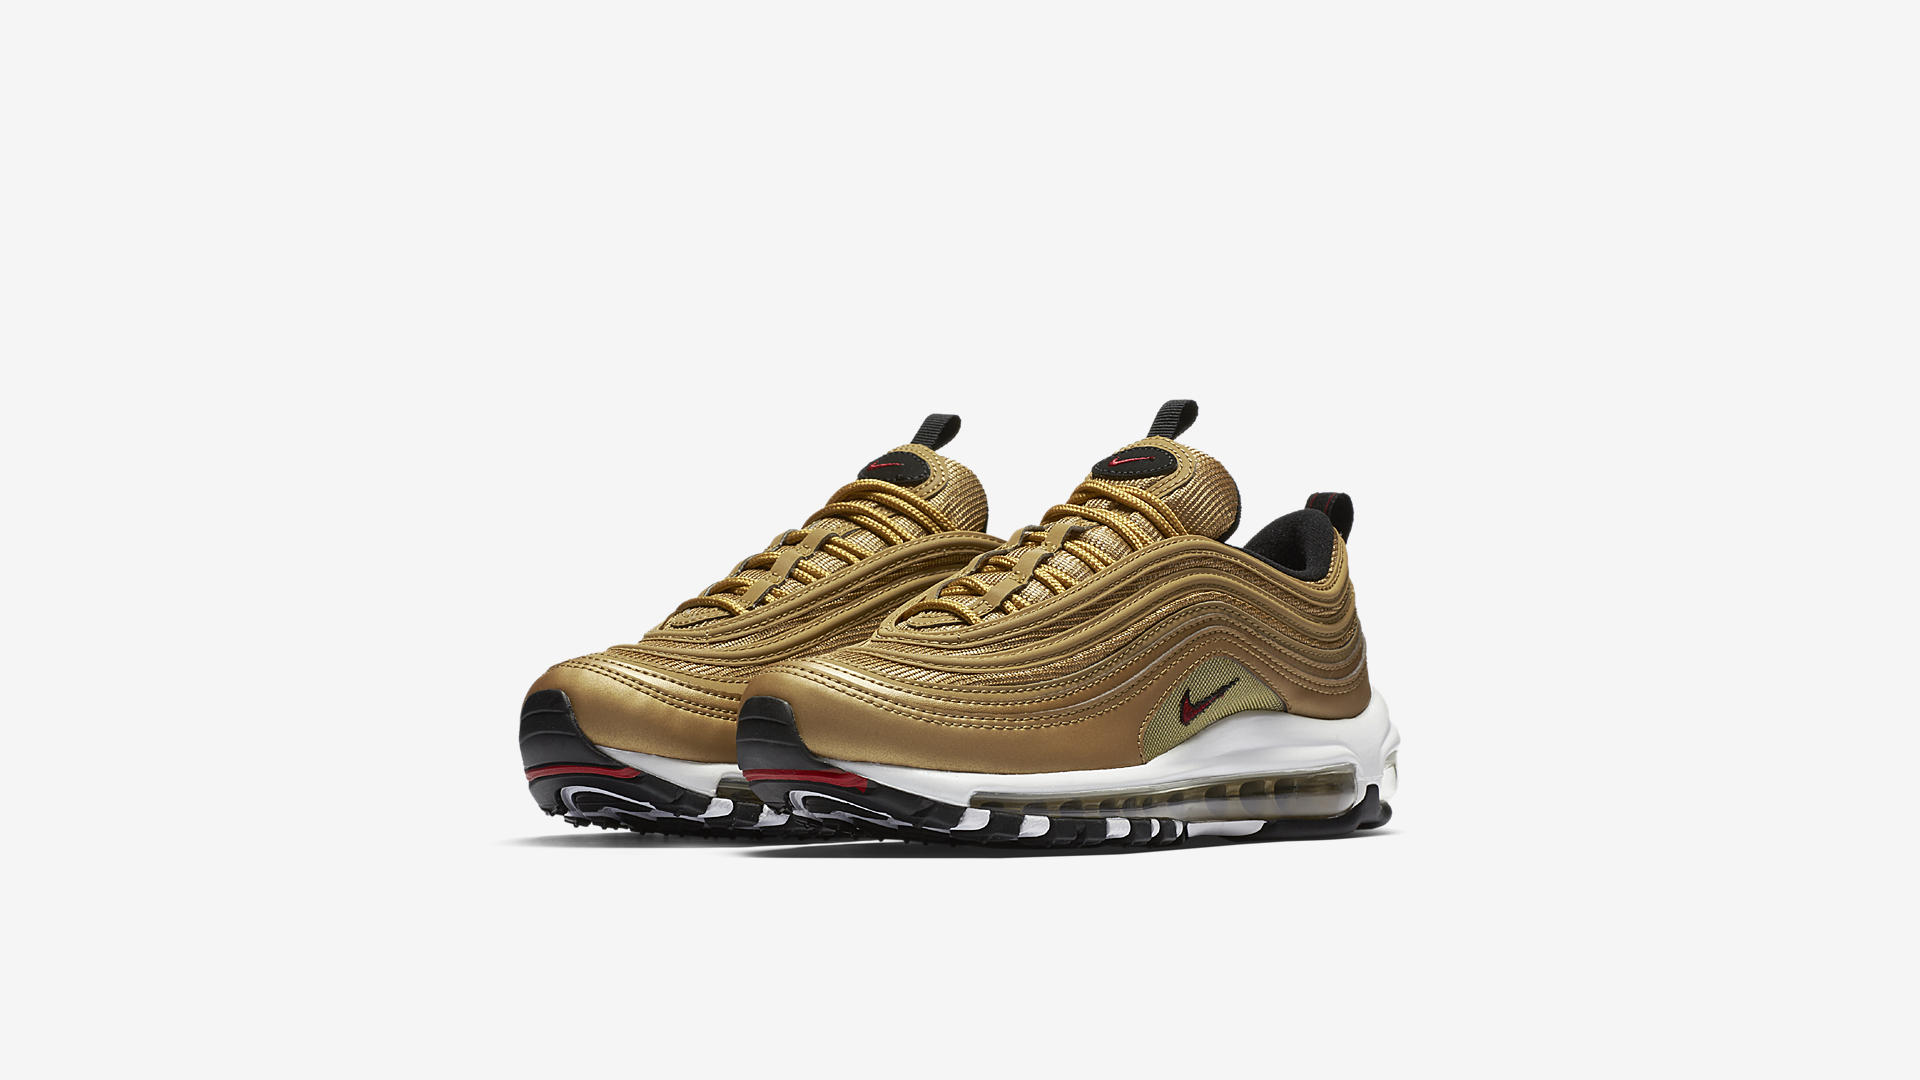 Nike Air Max 97 OG QS Metallic Gold/White/Black/Varsity Red (Dames)